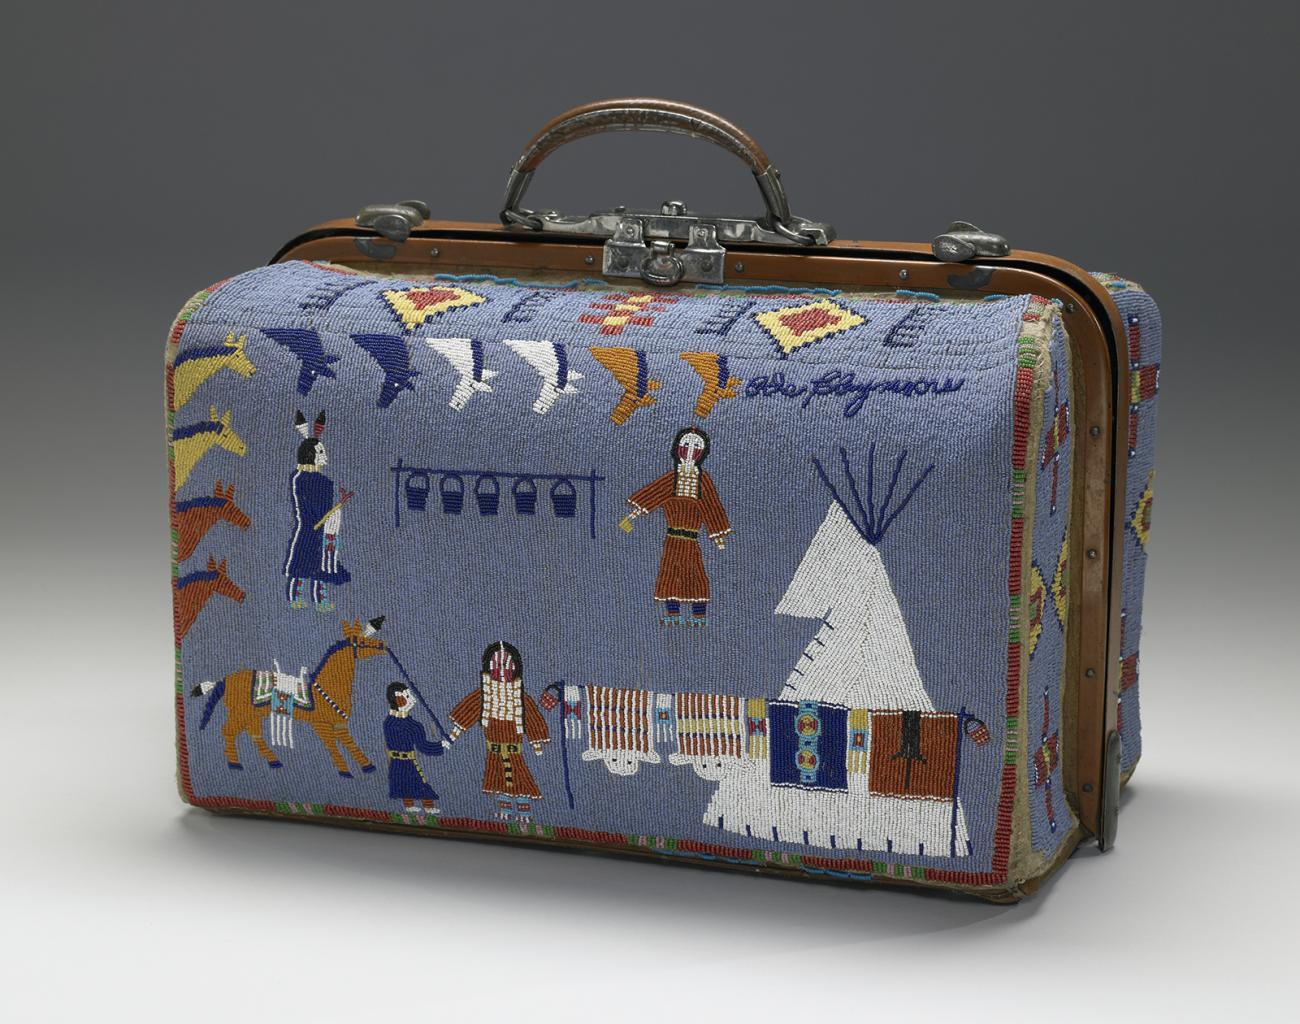 A blue suitcase made of beads with designs of people, a teepee, and animals.